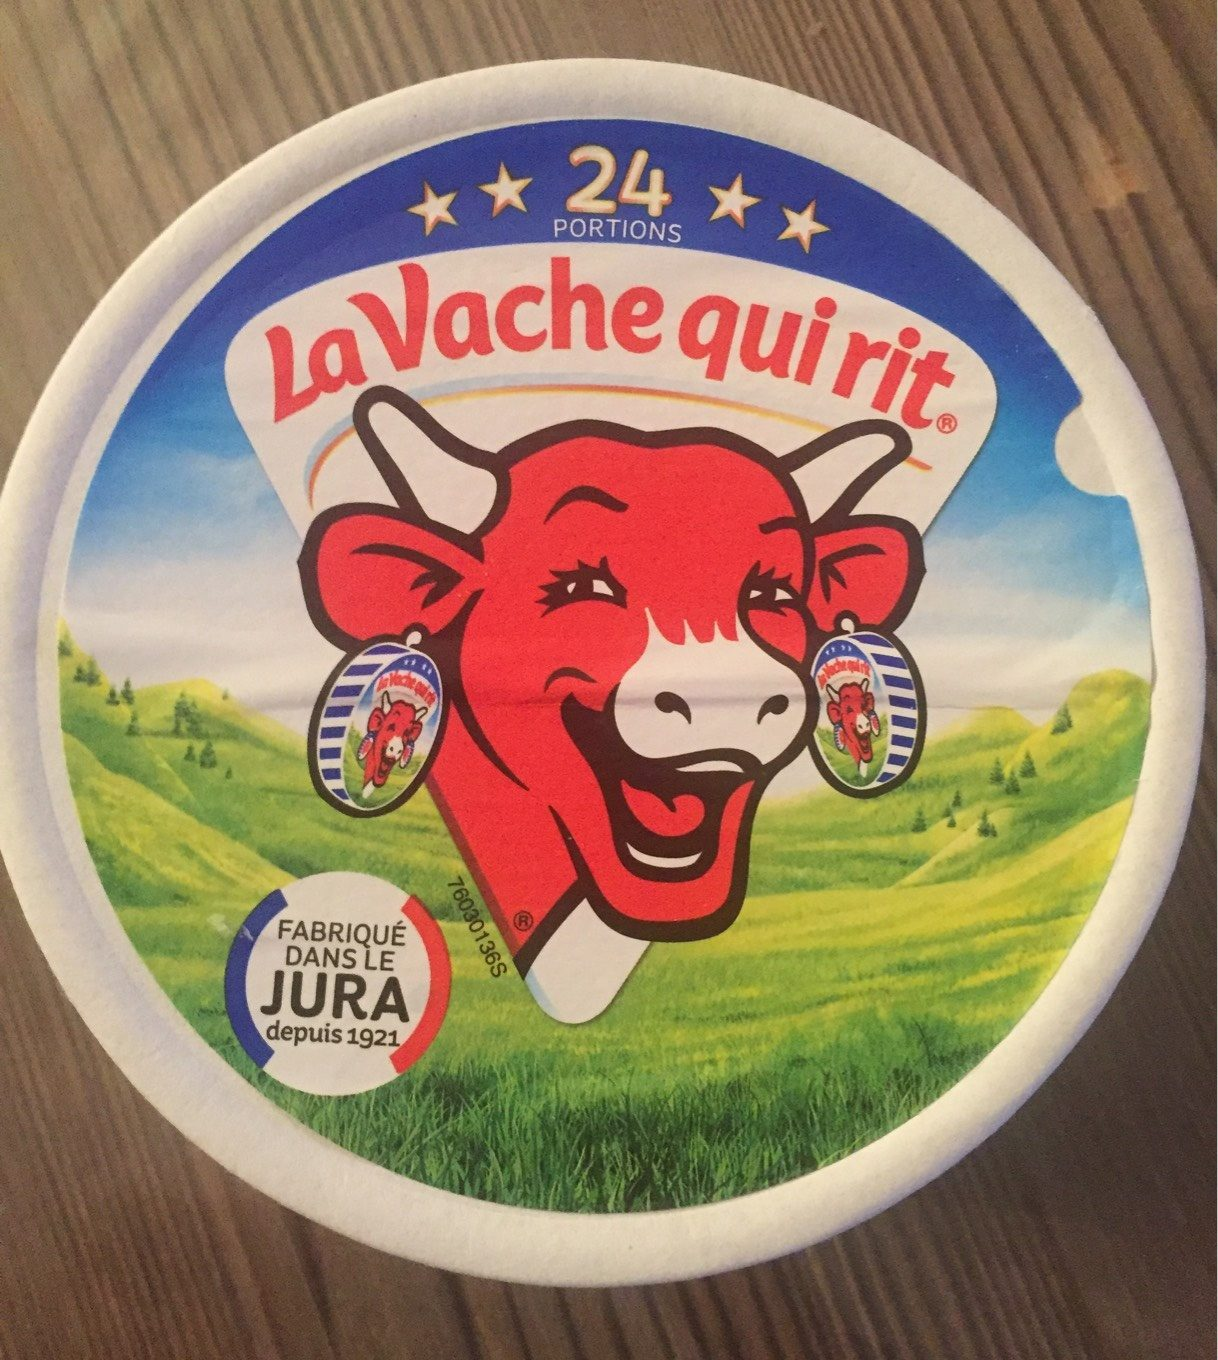 La Vache qui rit® 24 Portions (19 % MG) - Produit